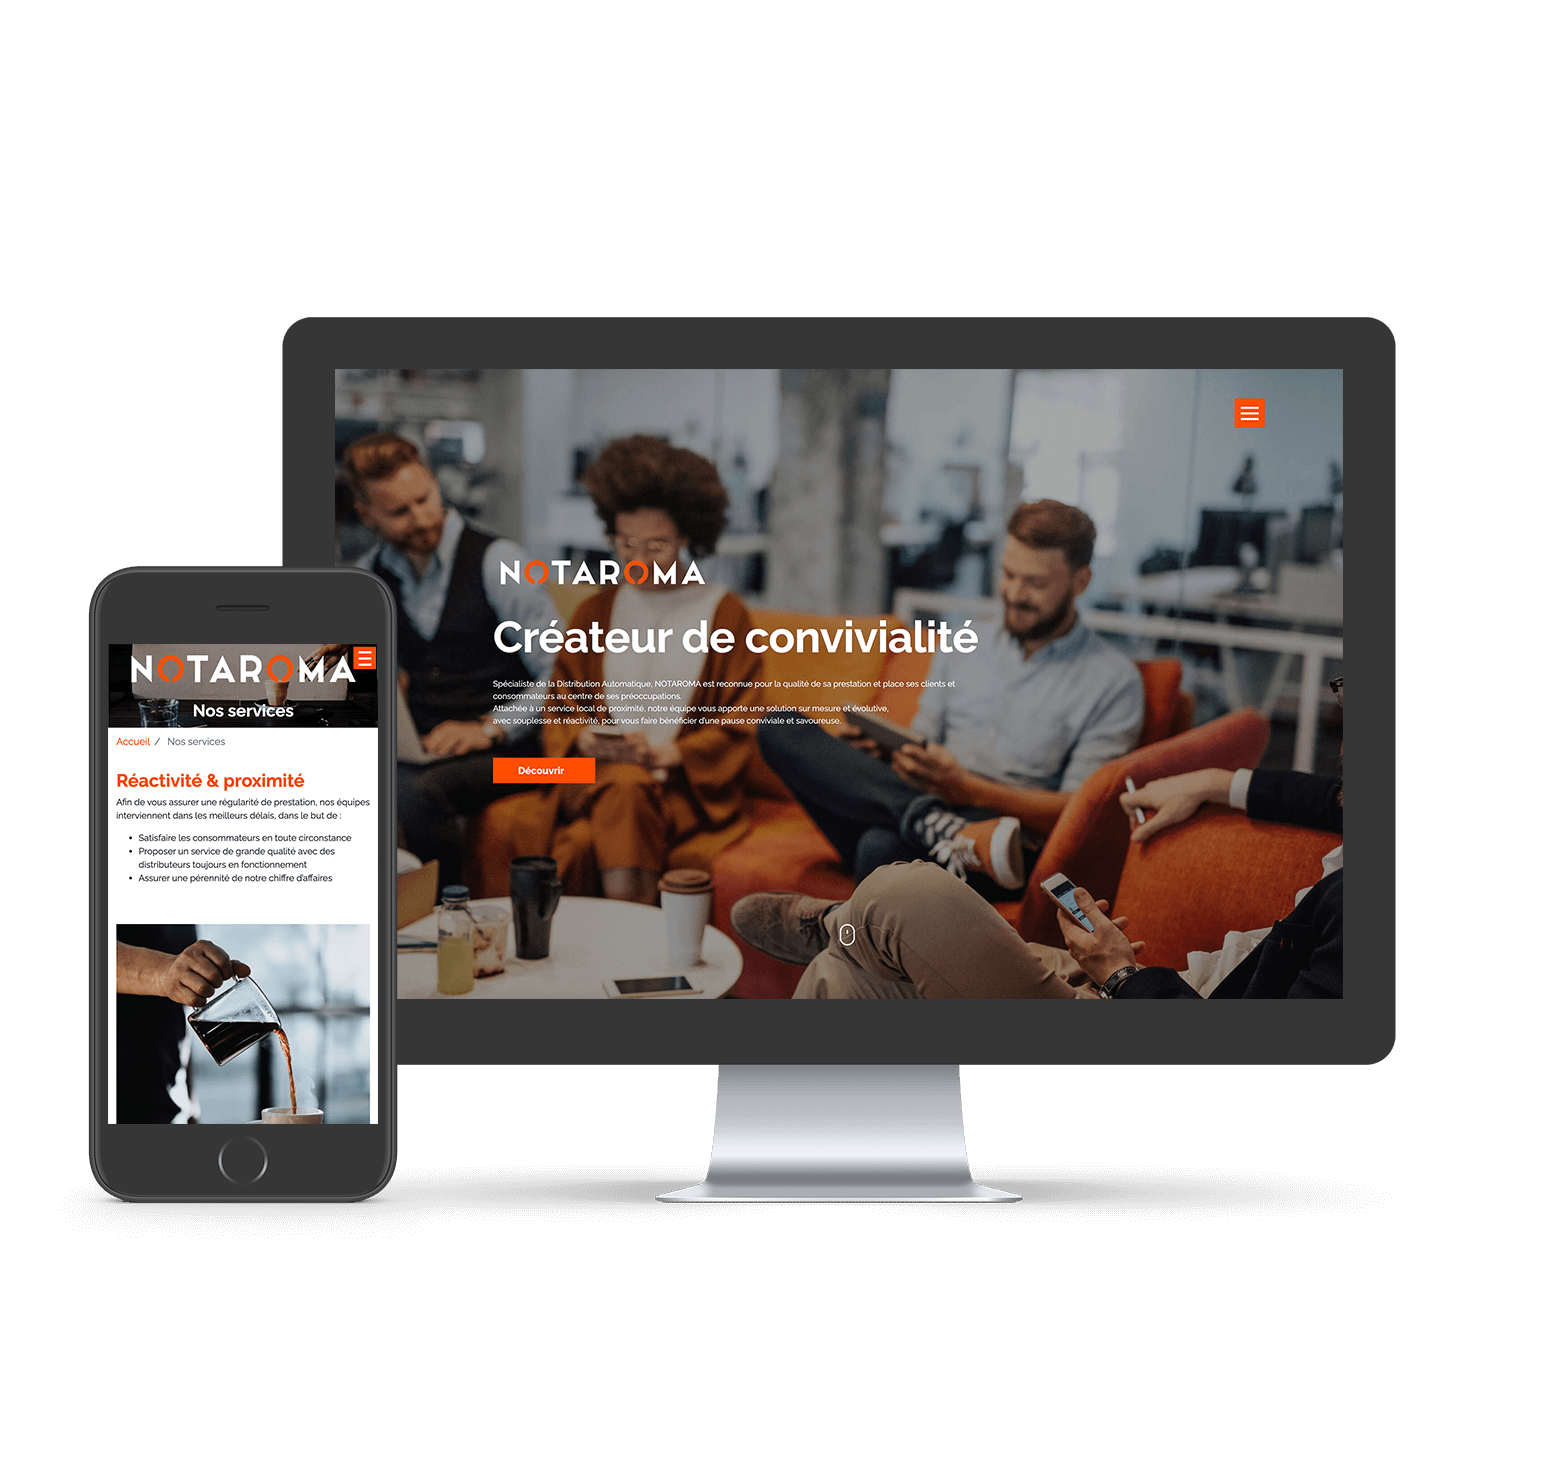 Image-1-branding-site-web-notaroma-agence-conseil-en-communication-Letb-synergie